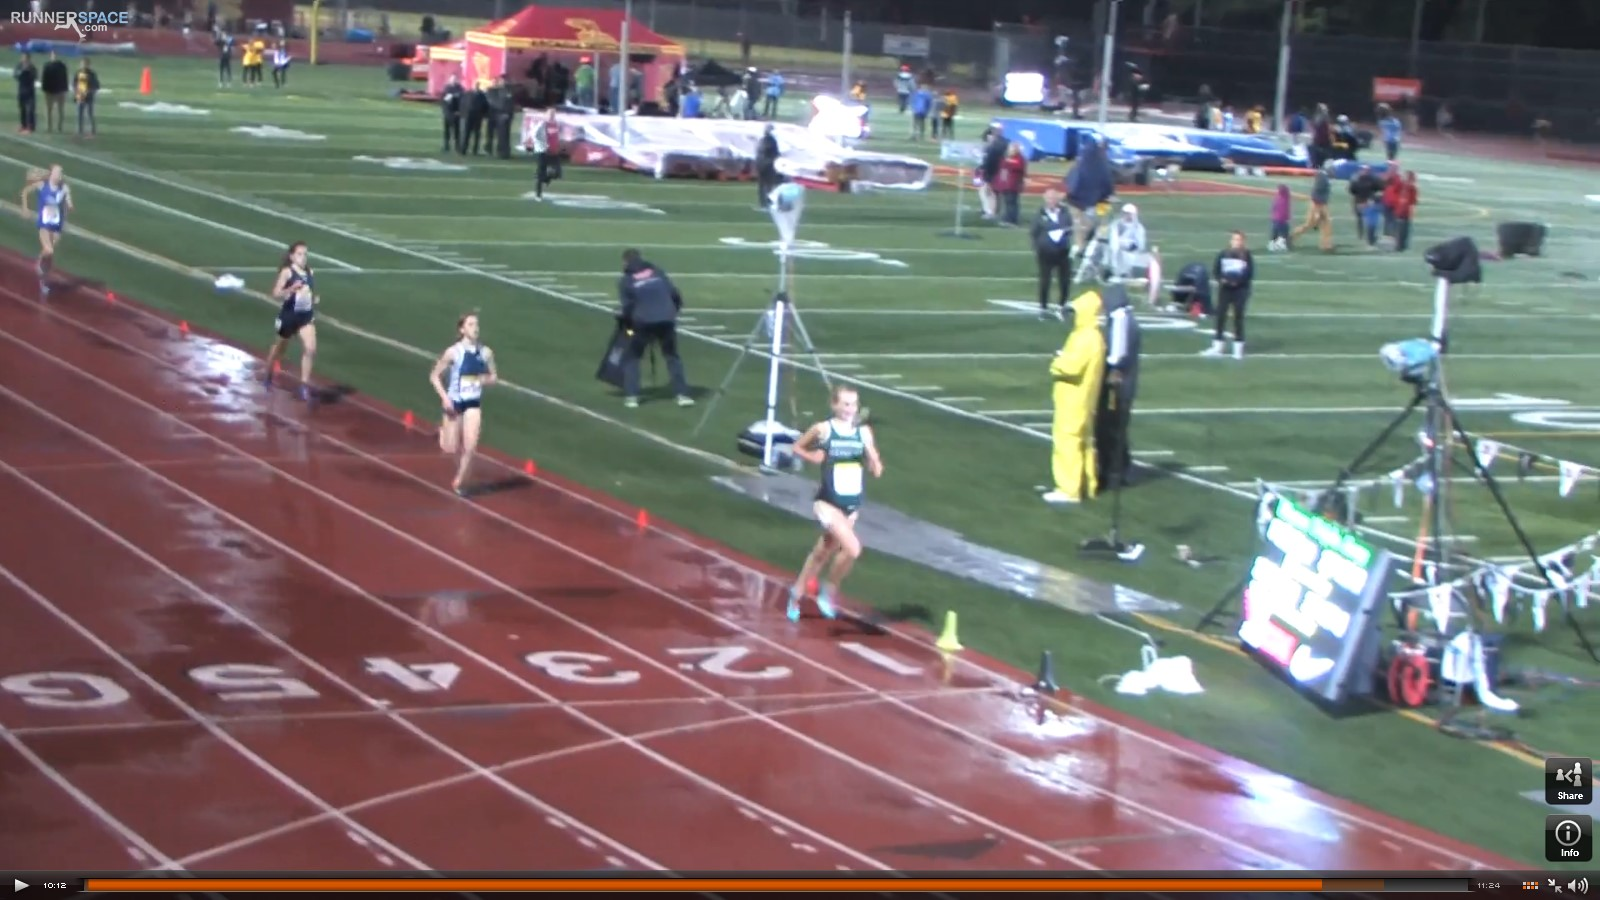 With 20m to go Annie Hill passes Hannah DeBalsi to take 2nd. Rylee's last 1600 5:03.54, last 800 2:27.21 and last 400 71.44.